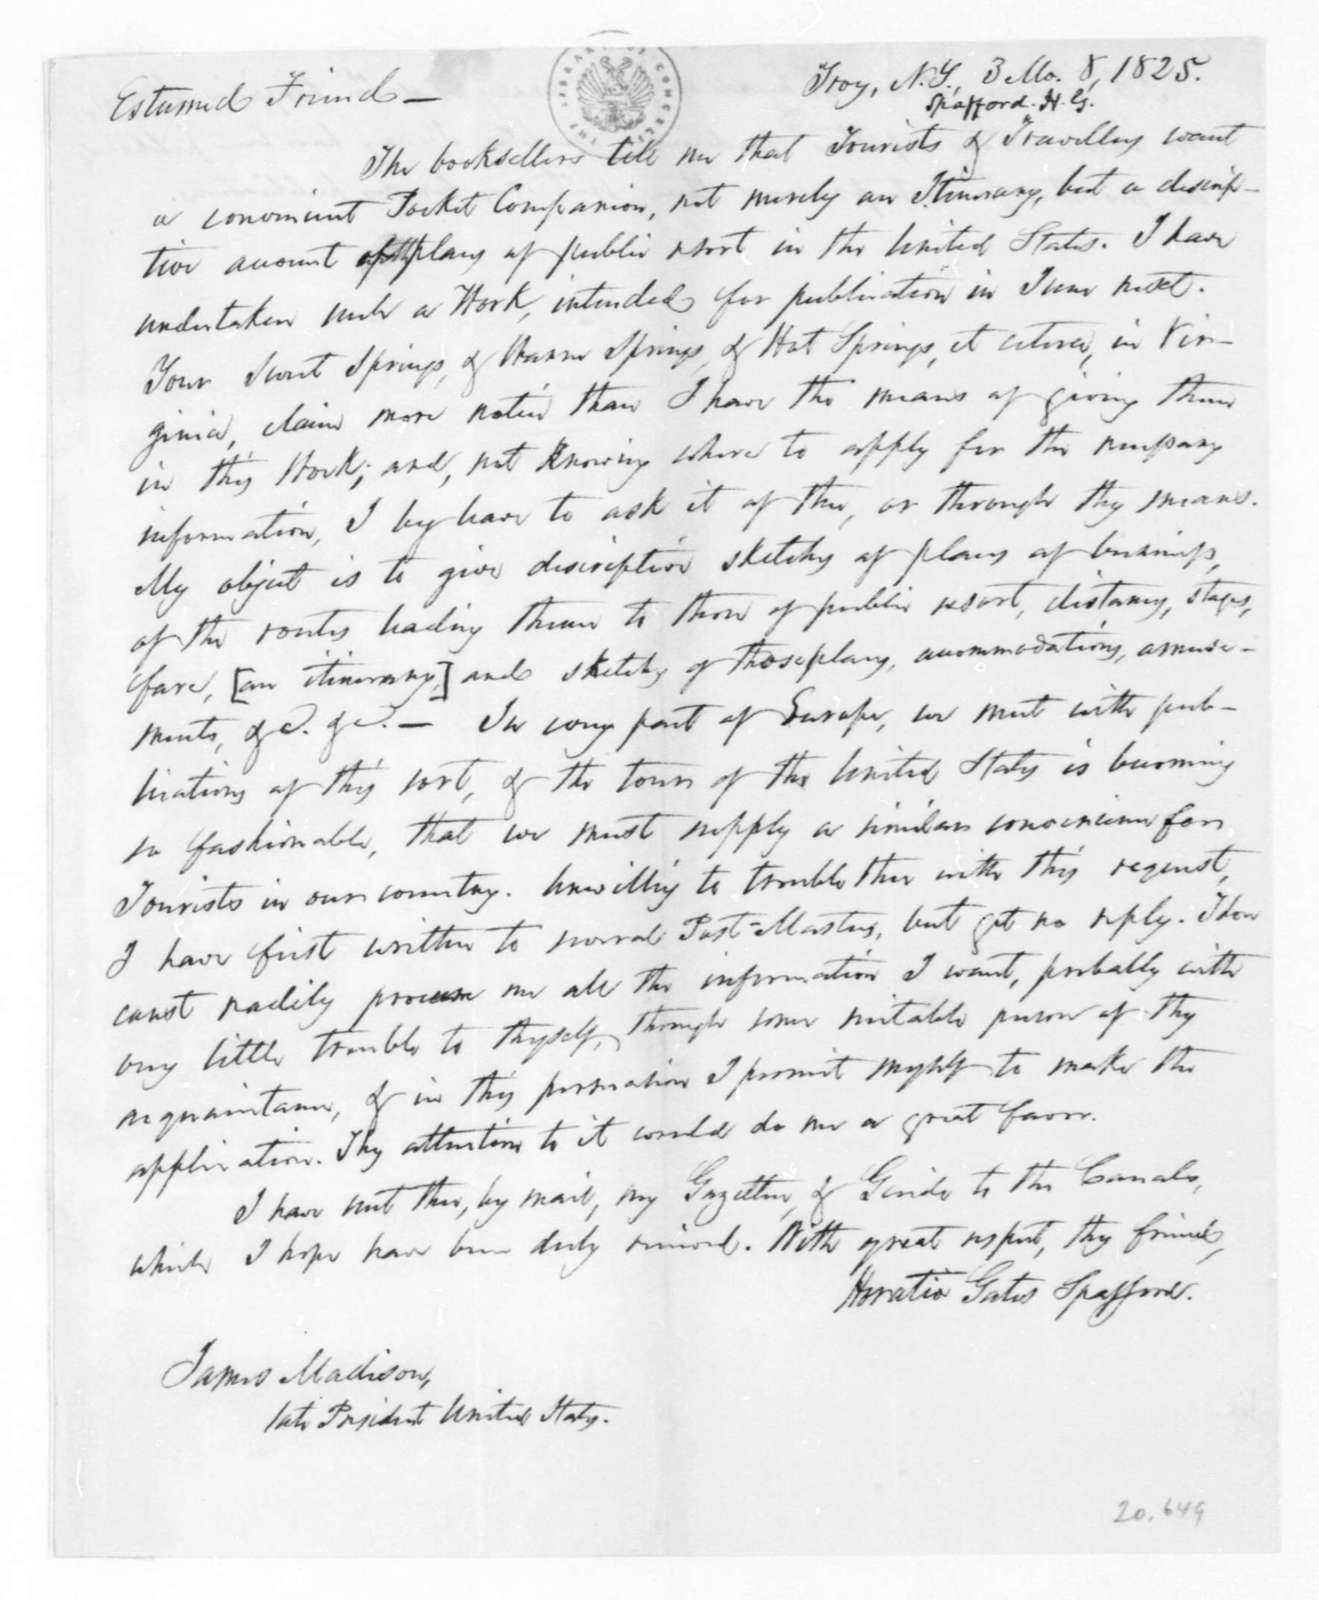 Horatio Gates Spafford to James Madison, March 8, 1825.